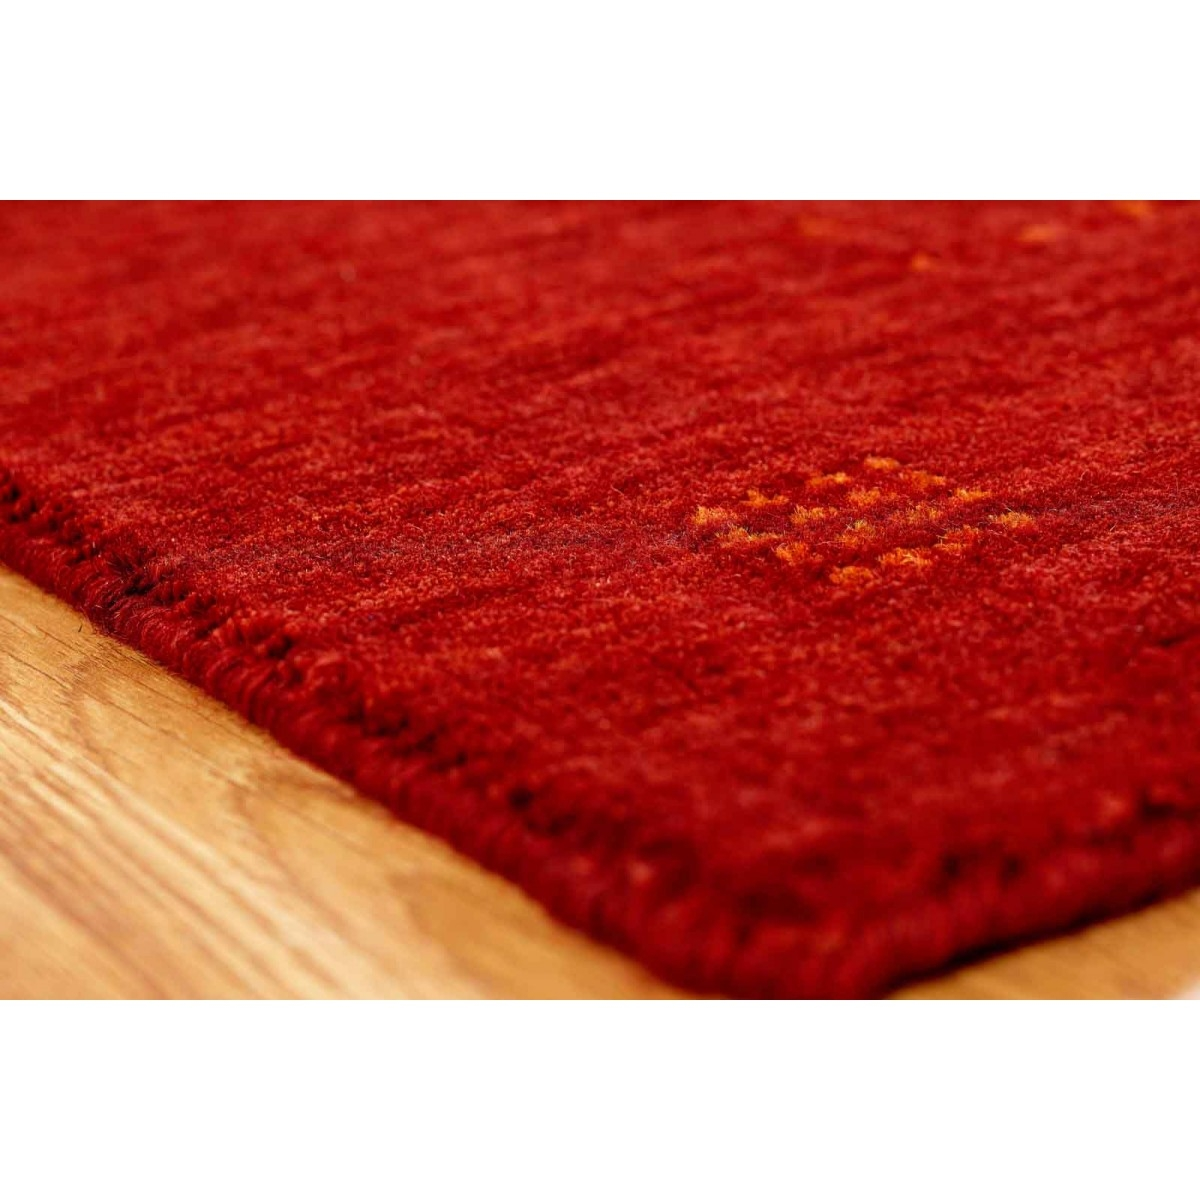 Red Wool Rugs Roselawnlutheran In Red Wool Rugs (Image 9 of 15)